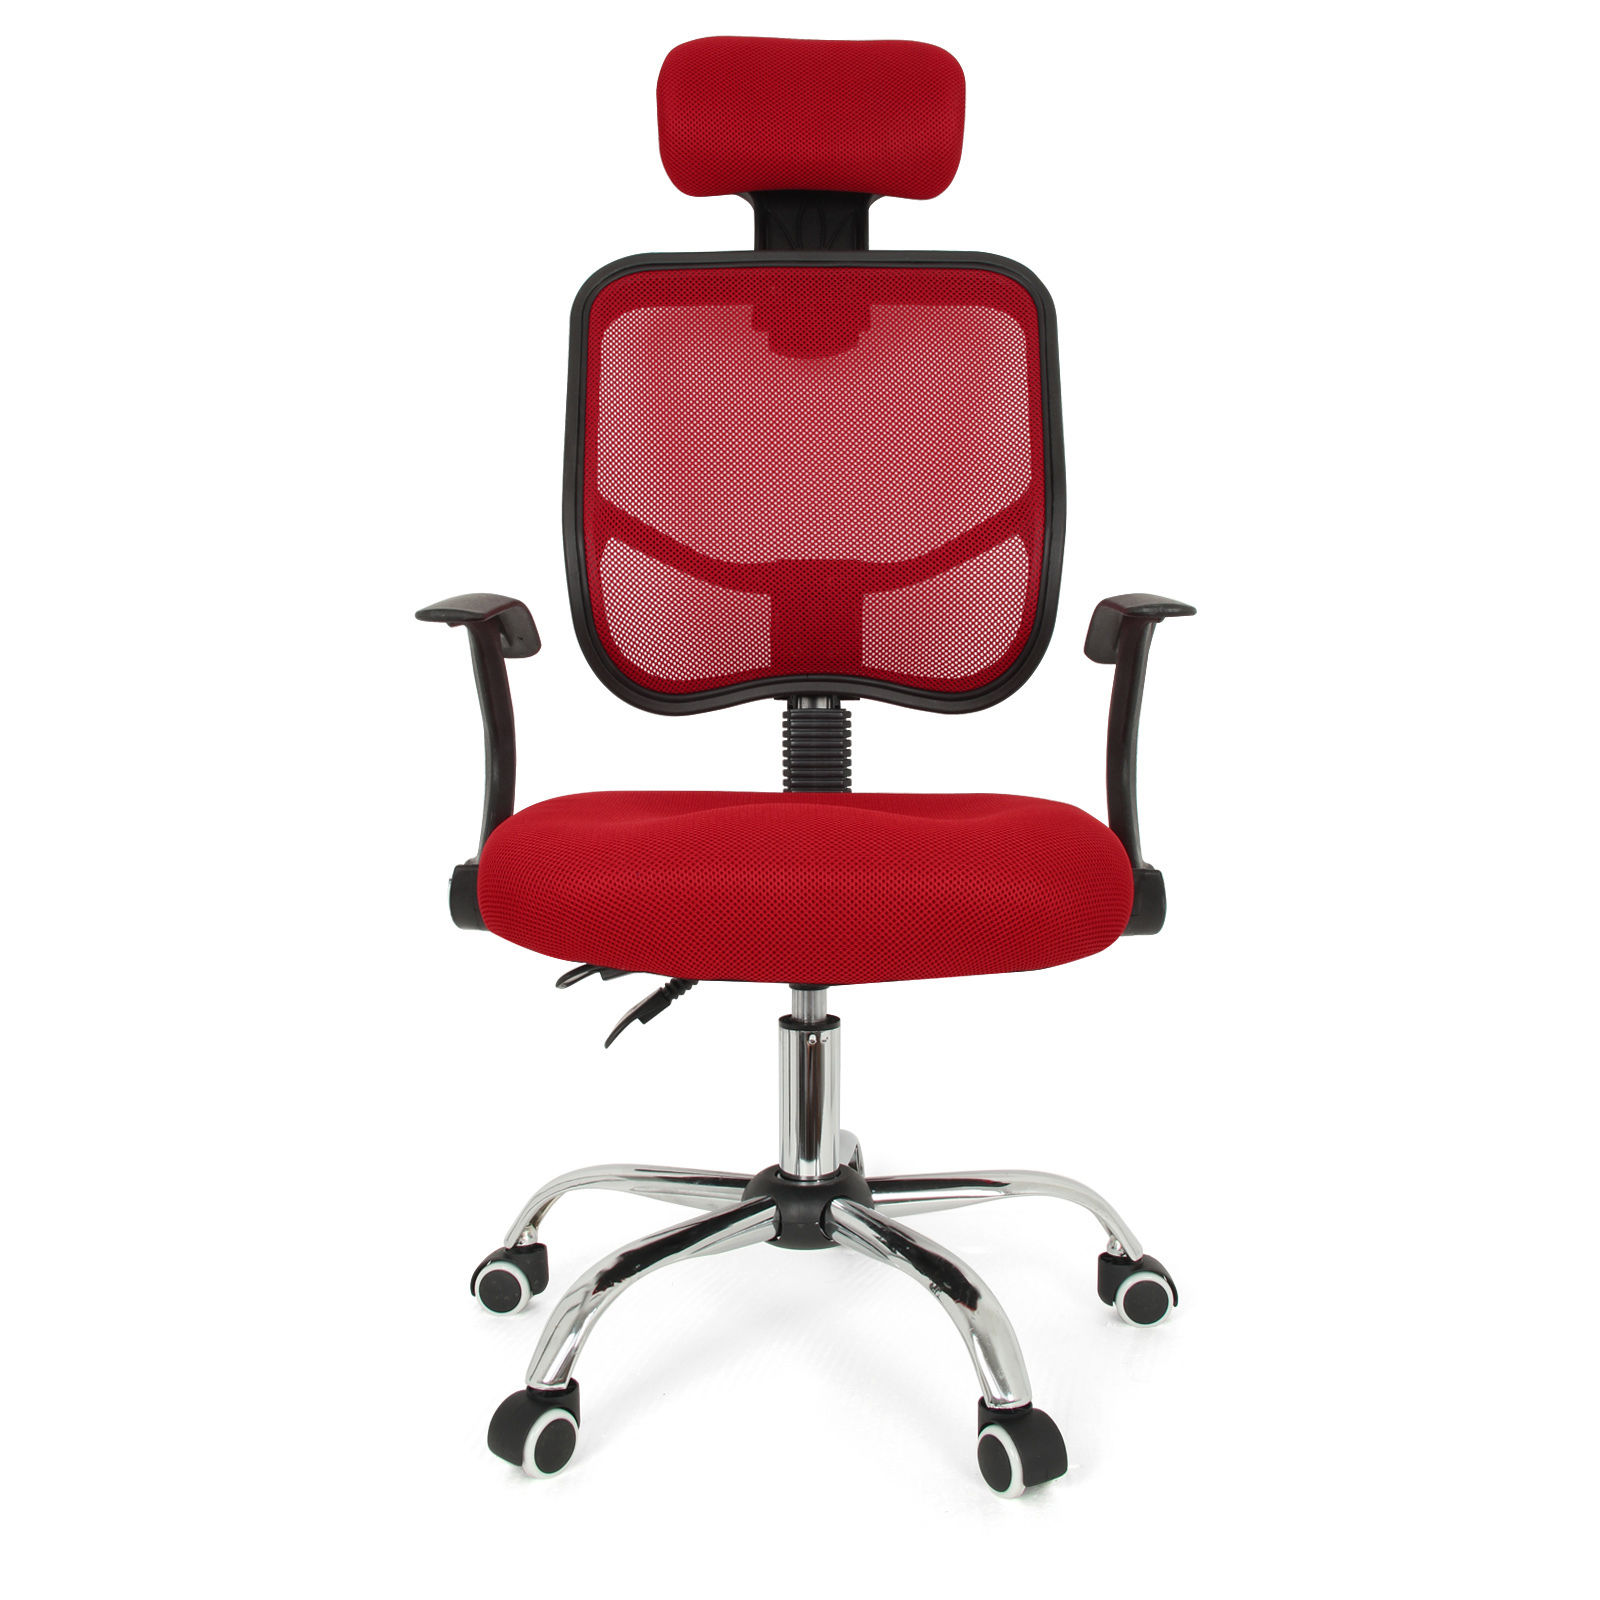 Desk Seat Us 23 96 Seat Height Adjustment Office Computer Desk Chair Chrome Mesh Seat Ventilate In Office Chairs From Furniture On Aliexpress Alibaba